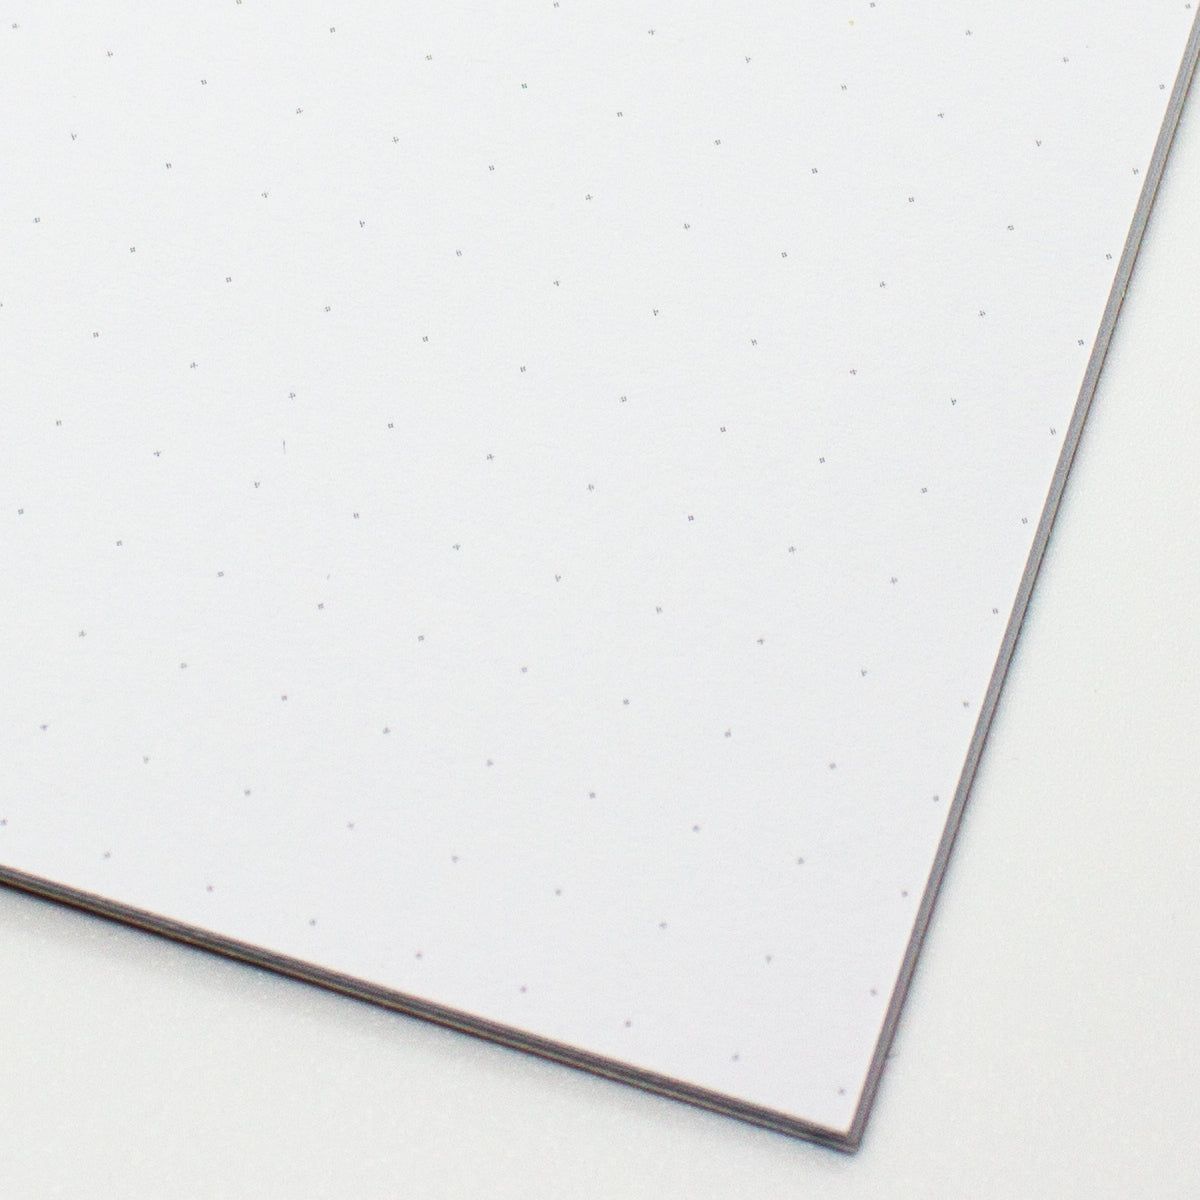 Notes Notebook - Dot Grid